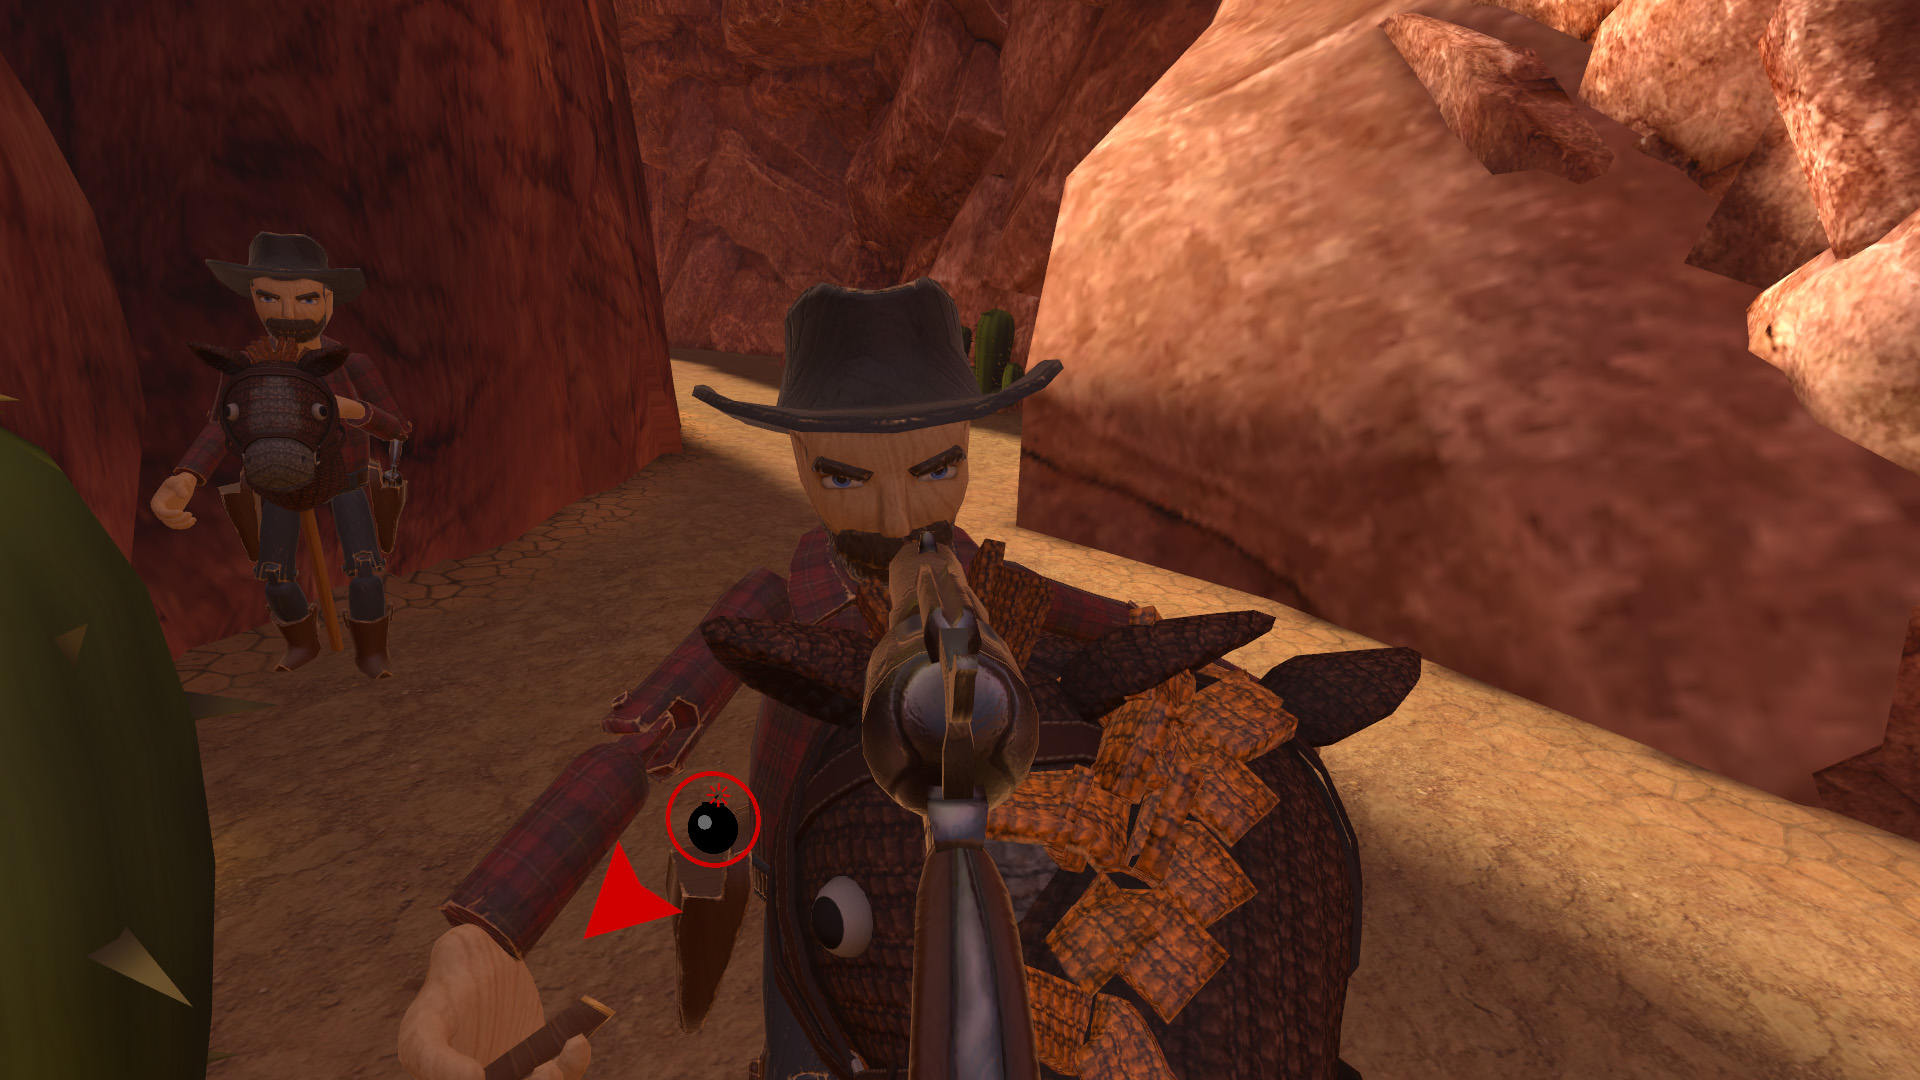 Hopalong: The Badlands review